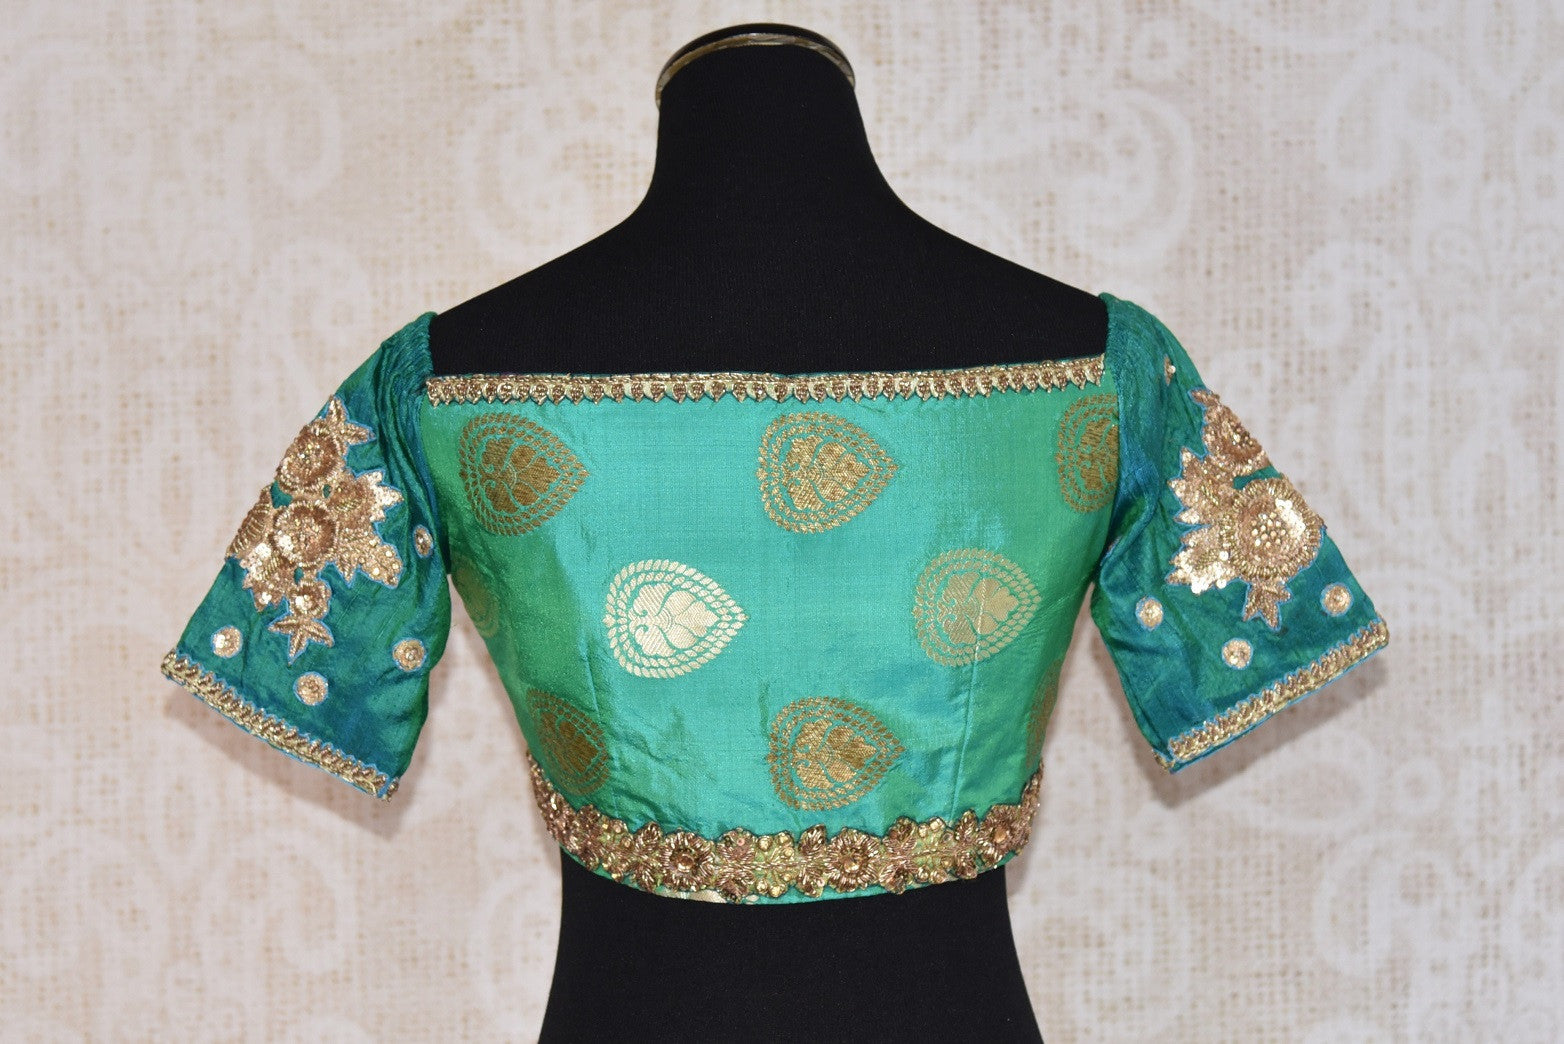 Shop this traditional Indian banarasi silk designer blouse from Pure Elegance online or from our store in USA. It is perfect for any wedding or reception party. Close up.